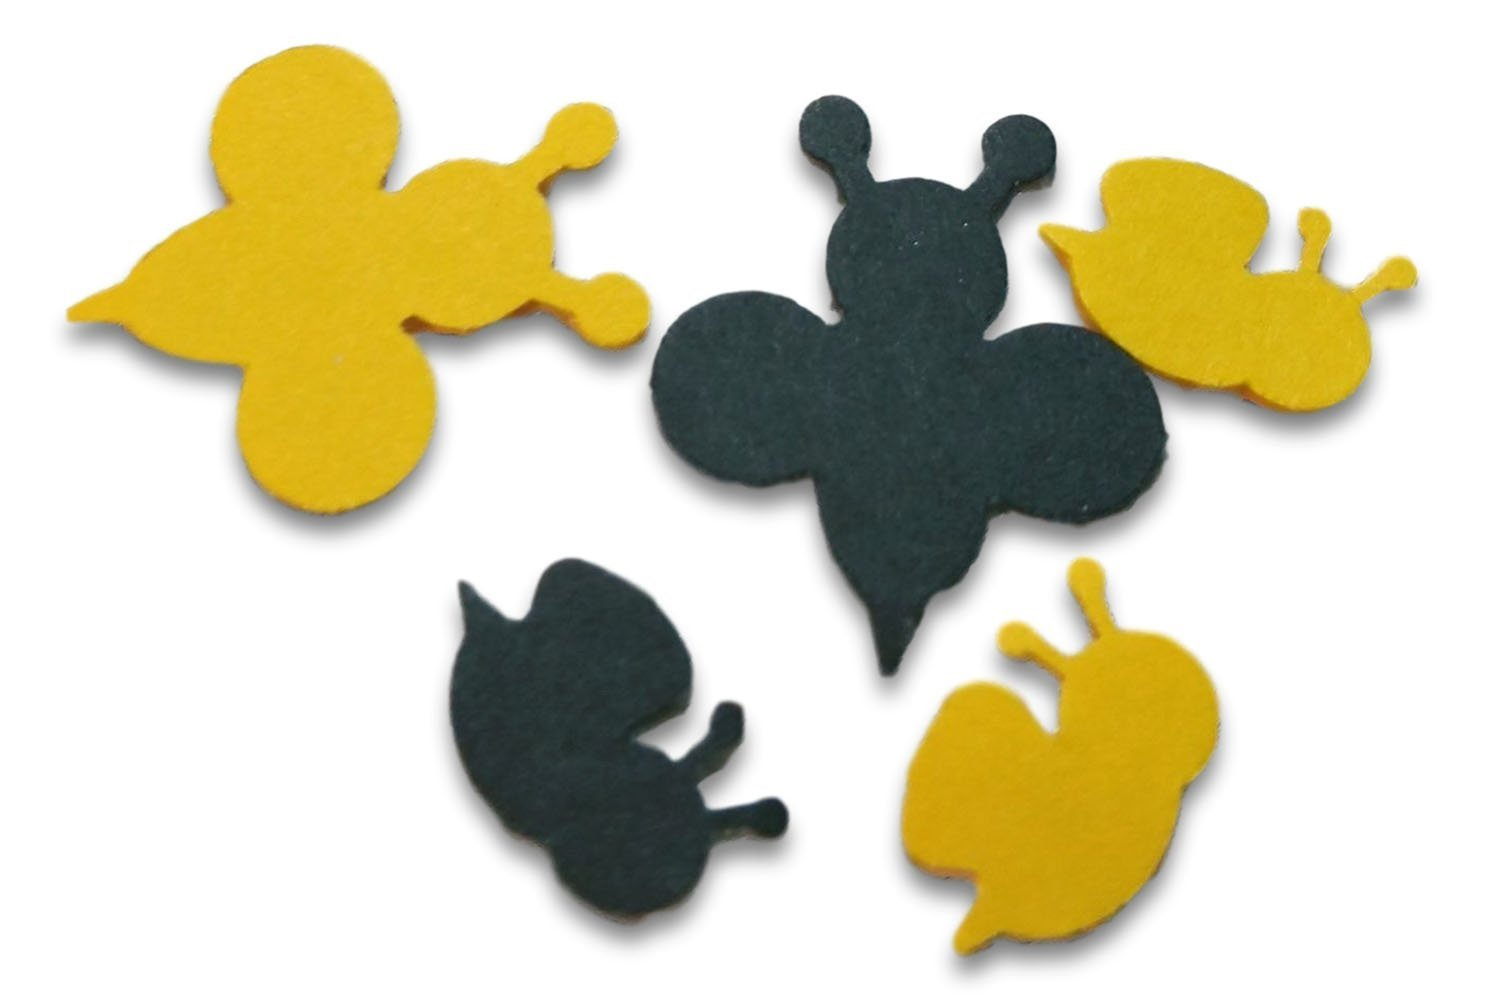 """Custom & Fancy {.5'' - 1'' Inch} Approx 100 Pieces of Large """"Table"""" Party Confetti Made of Premium Card Stock w/ Cute Bumble Bee Bug Shape Baby Shower Gender Neutral Design [Black & Yellow]"""